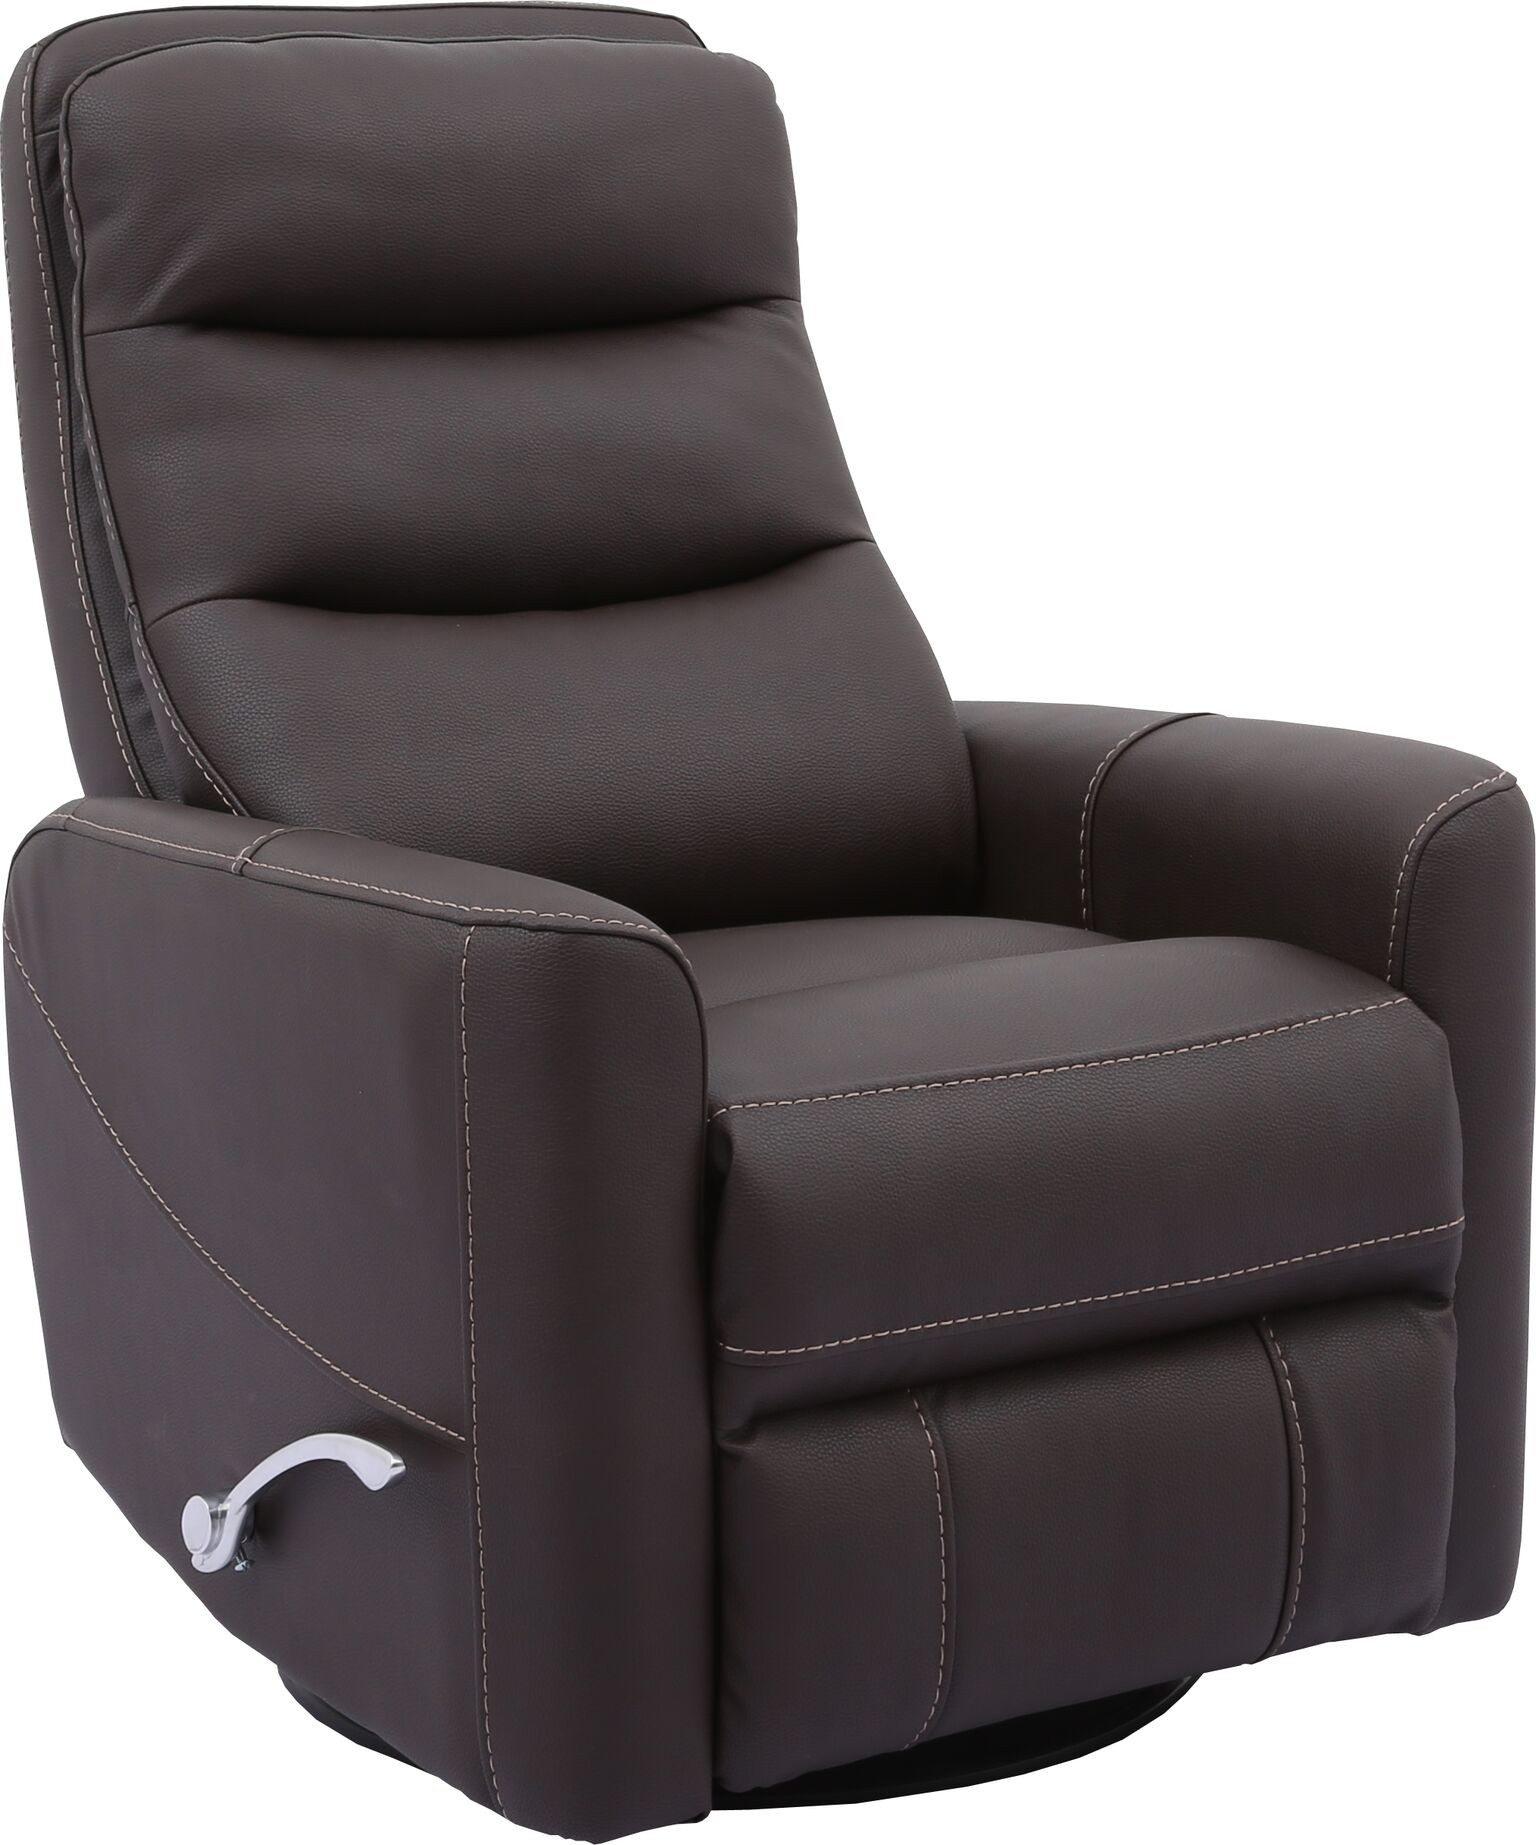 Hercules Chocolate Swivel Glider Recliner With Articulating Headrest With Regard To Hercules Grey Swivel Glider Recliners (View 2 of 25)